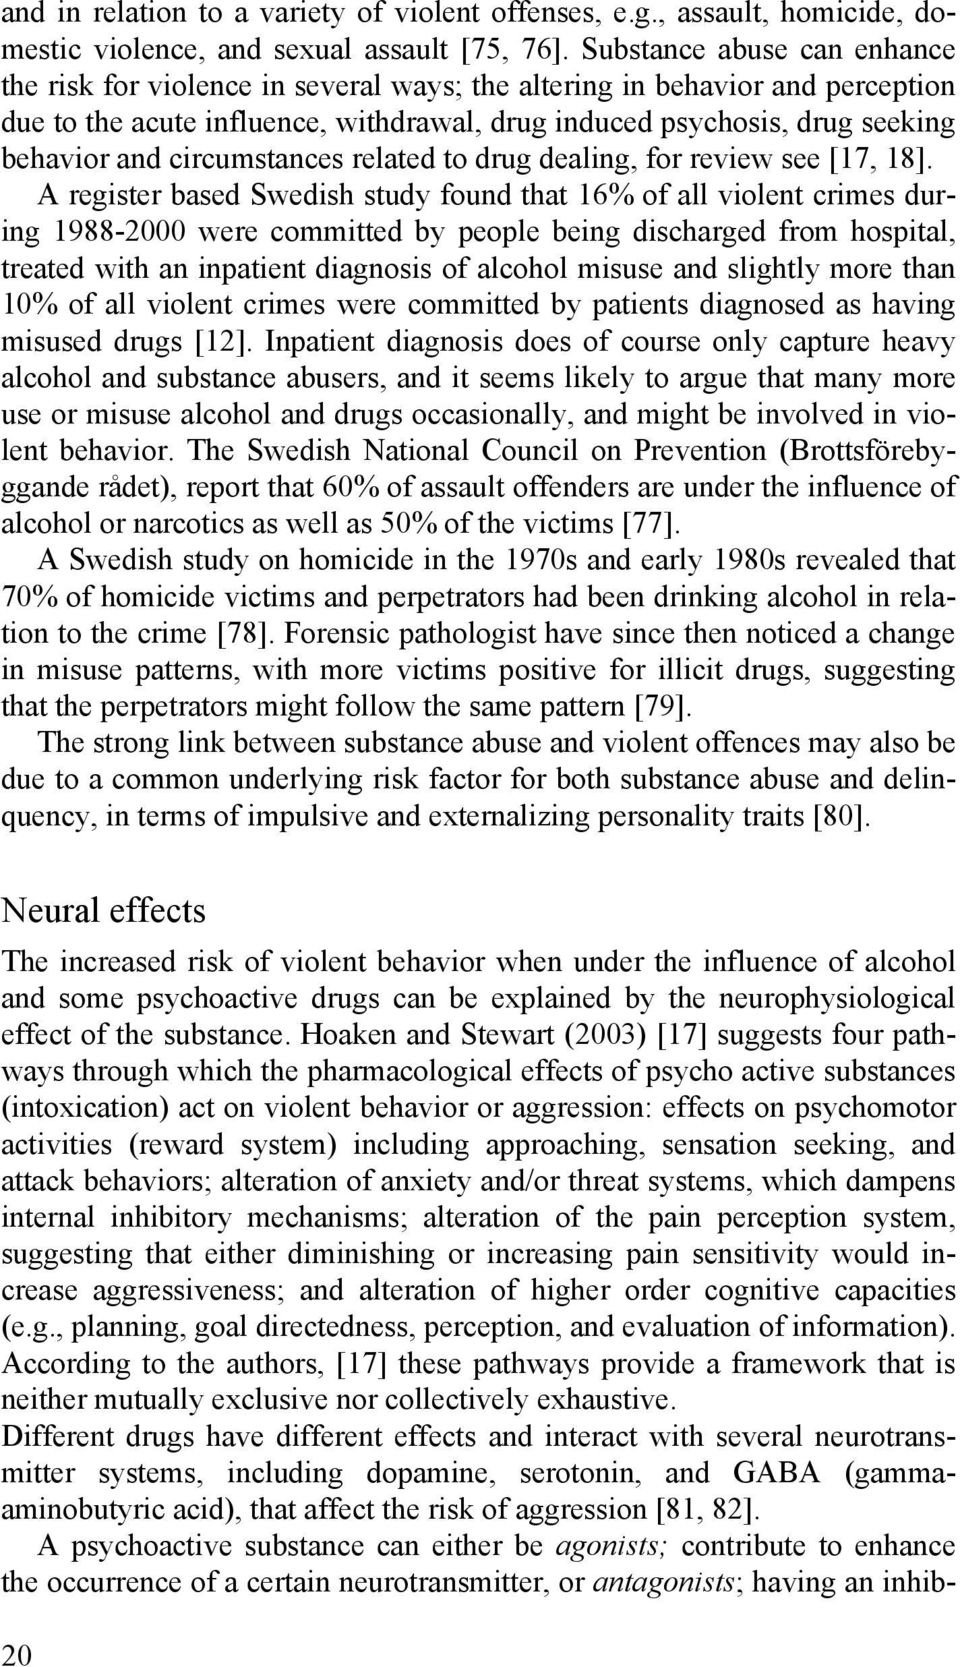 circumstances related to drug dealing, for review see [17, 18].